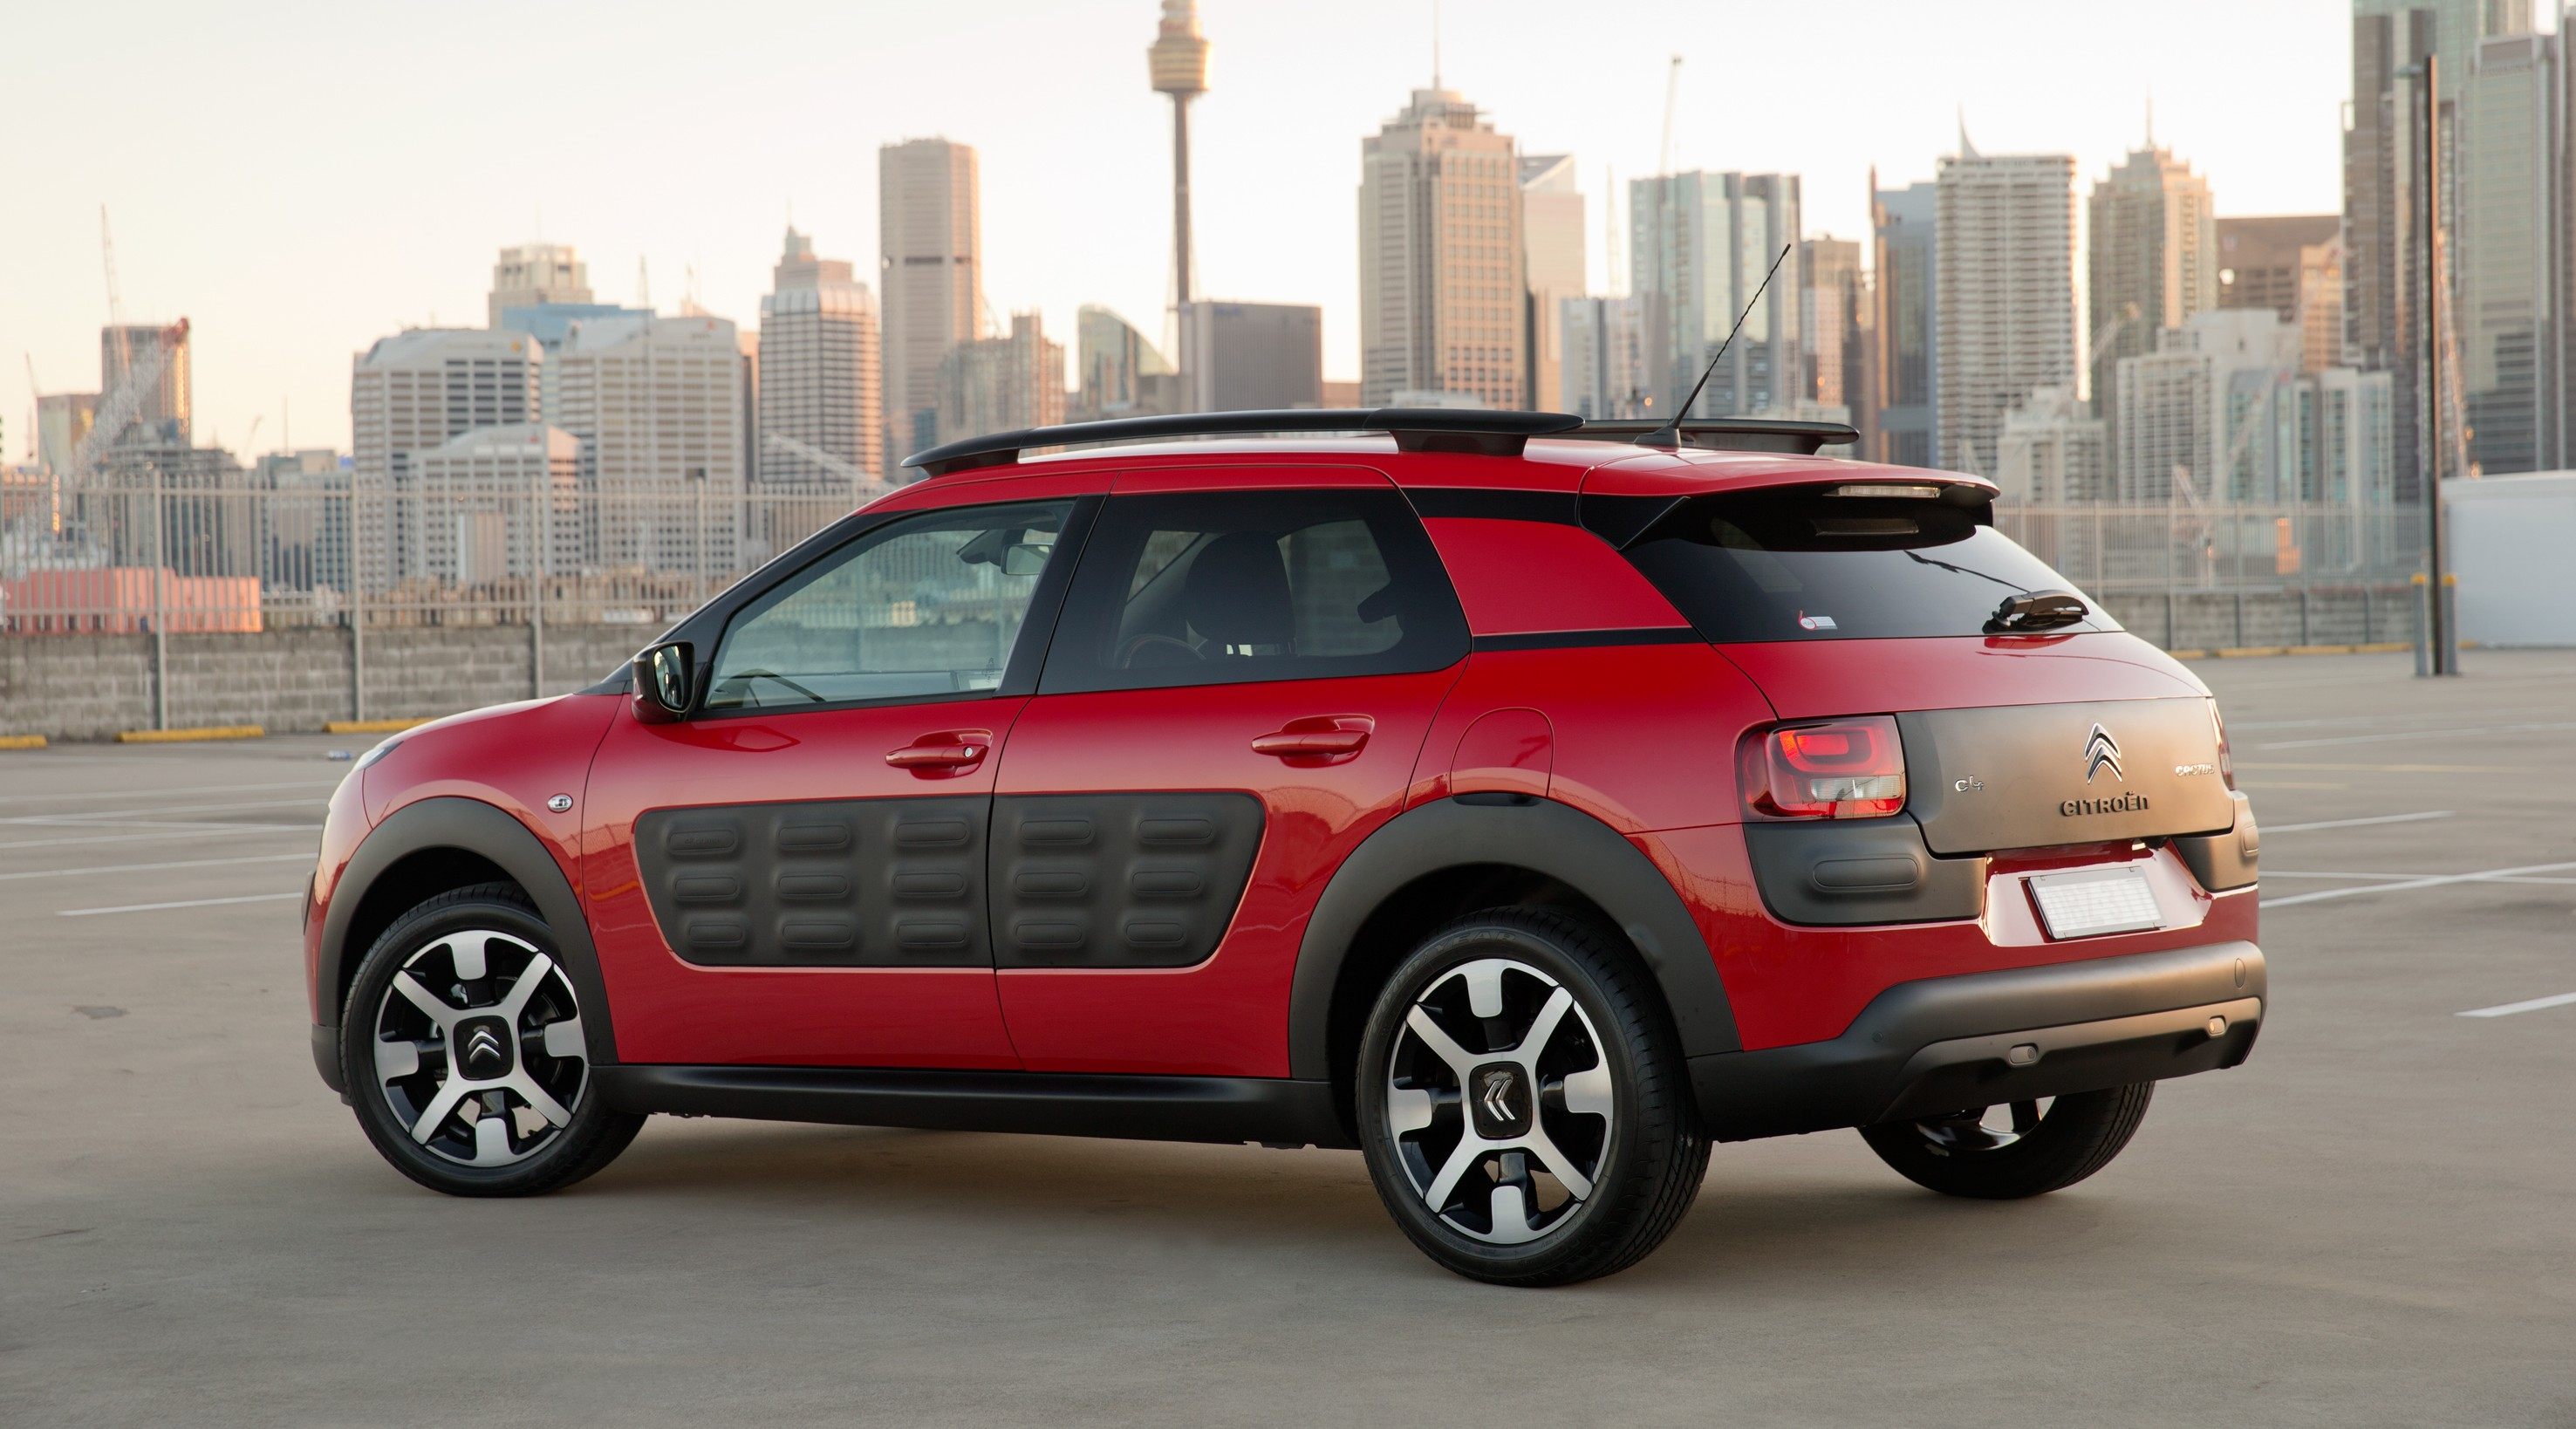 2016 citroen c4 cactus arrives in showrooms photos 1 of 8. Black Bedroom Furniture Sets. Home Design Ideas